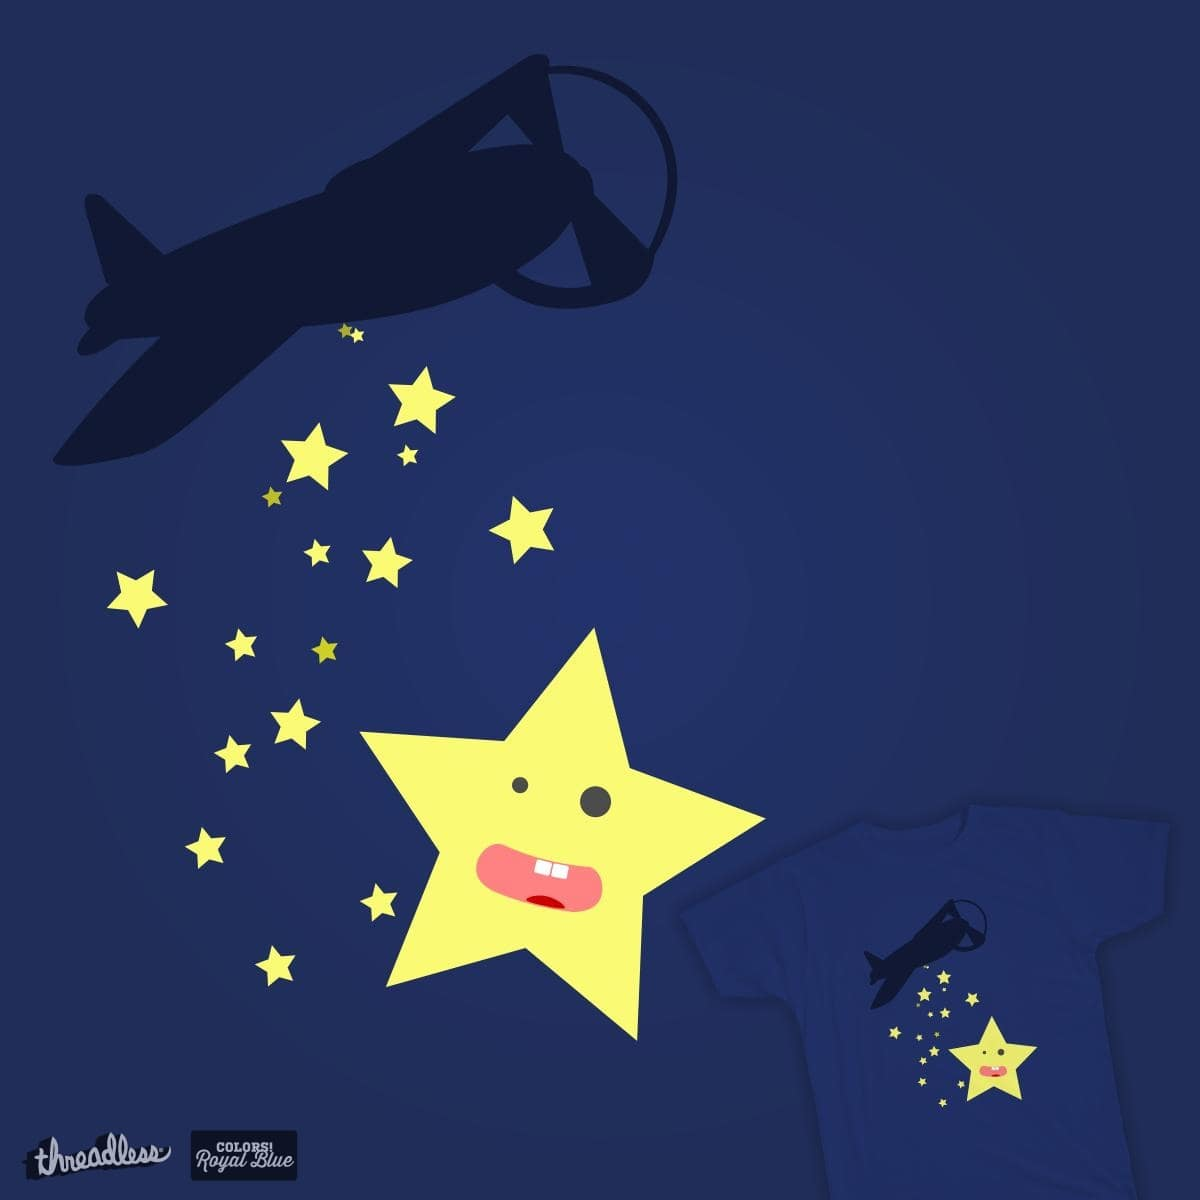 Wishes for everybody! by cospell on Threadless